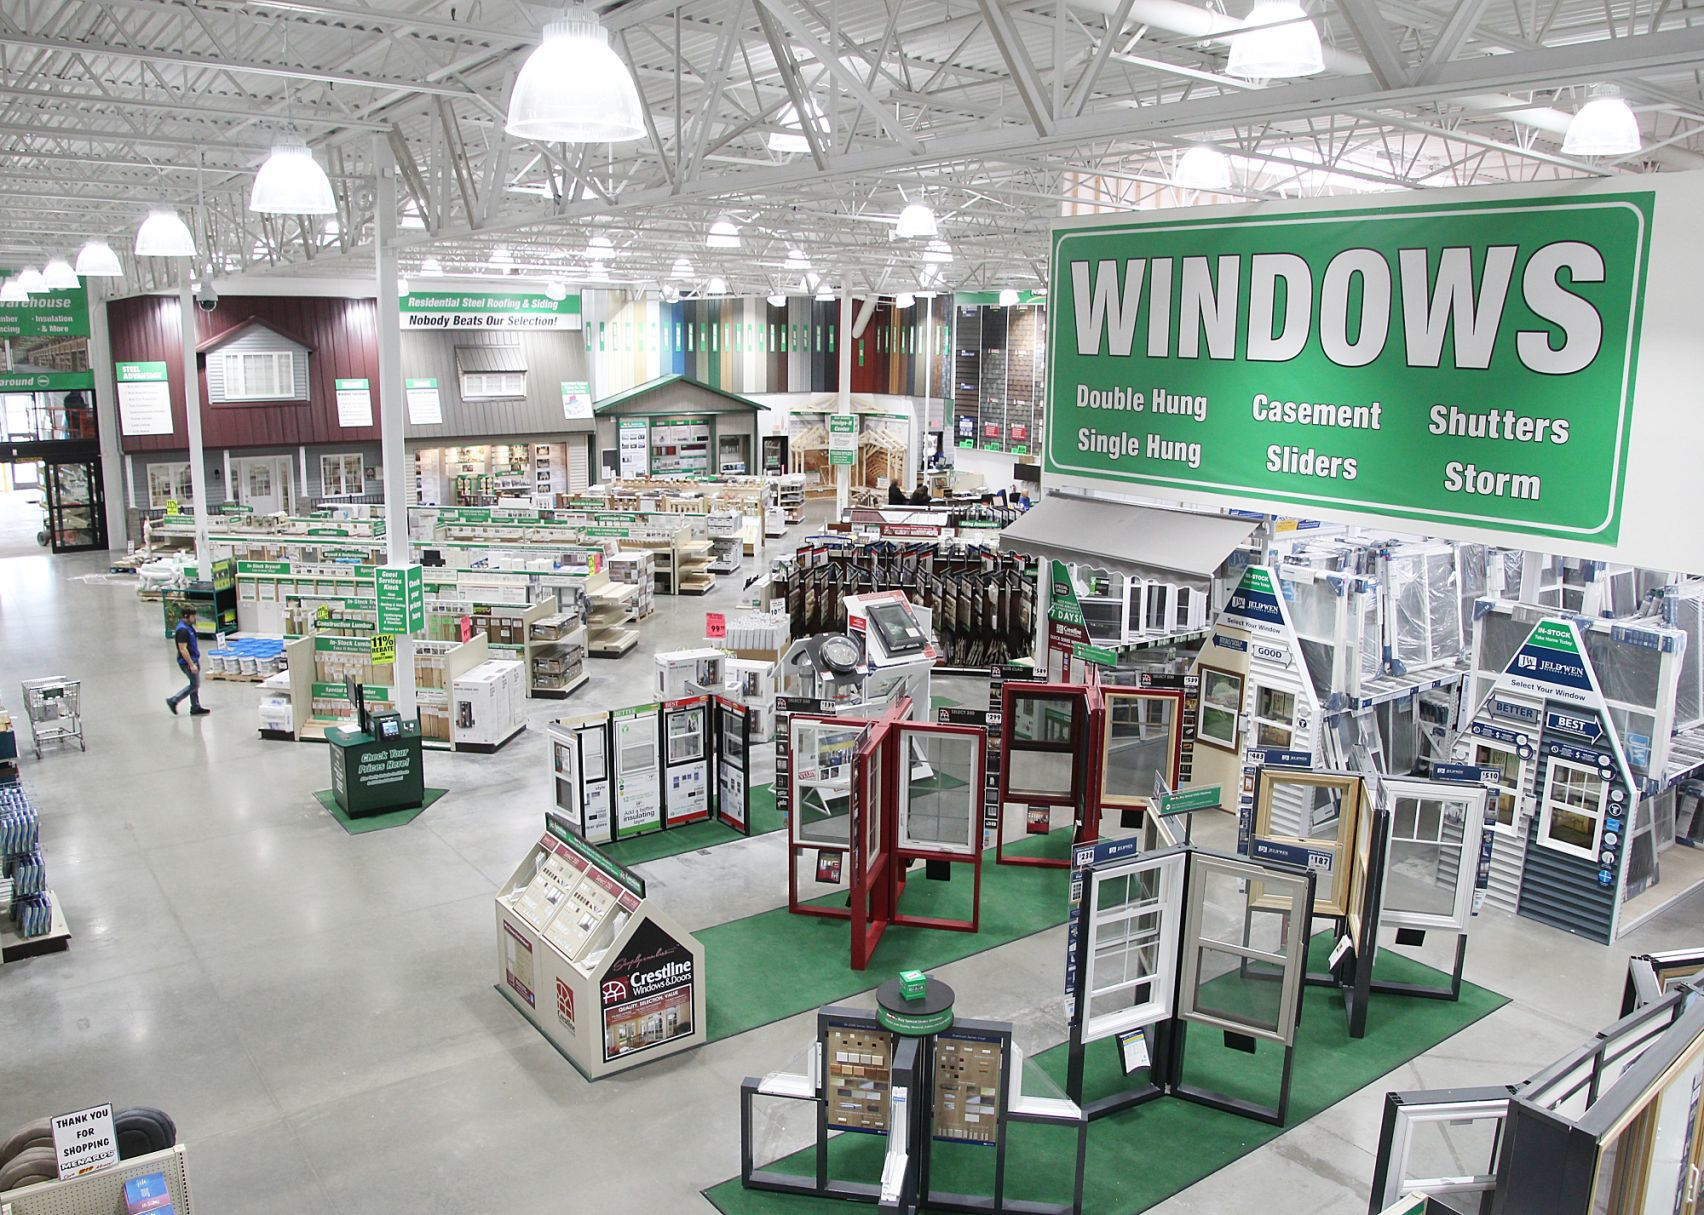 Progress Menards Completes Major Remodeling In Spencer Sioux City Progress Area Ag Siouxcityjournal Com